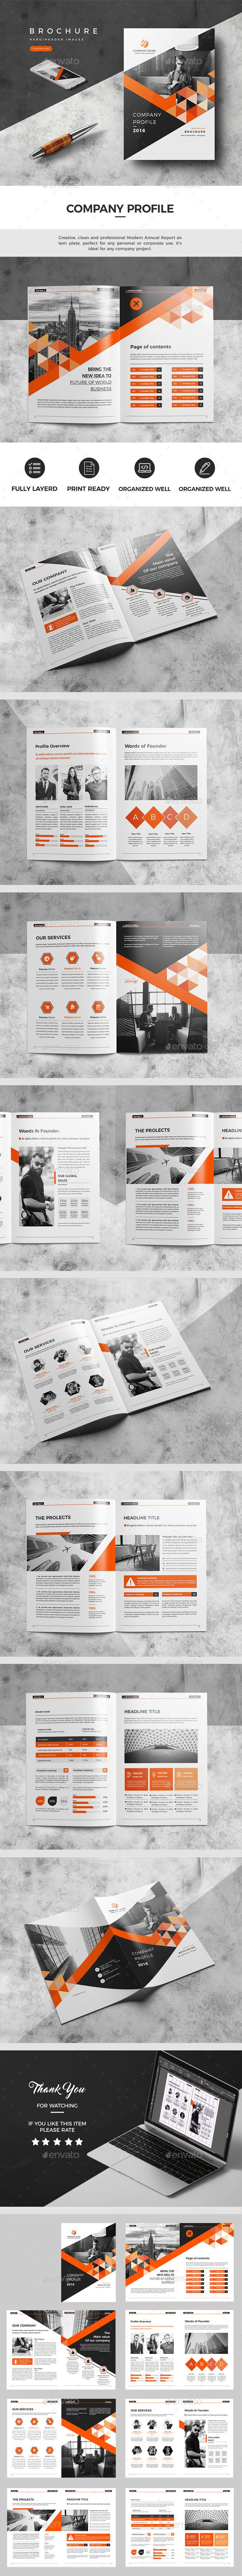 Corporate Annual Report Design Template - Catalogs Brochures Design Template InDesign INDD. Download here: https://graphicriver.net/item/annual-report/19370494?ref=yinkira